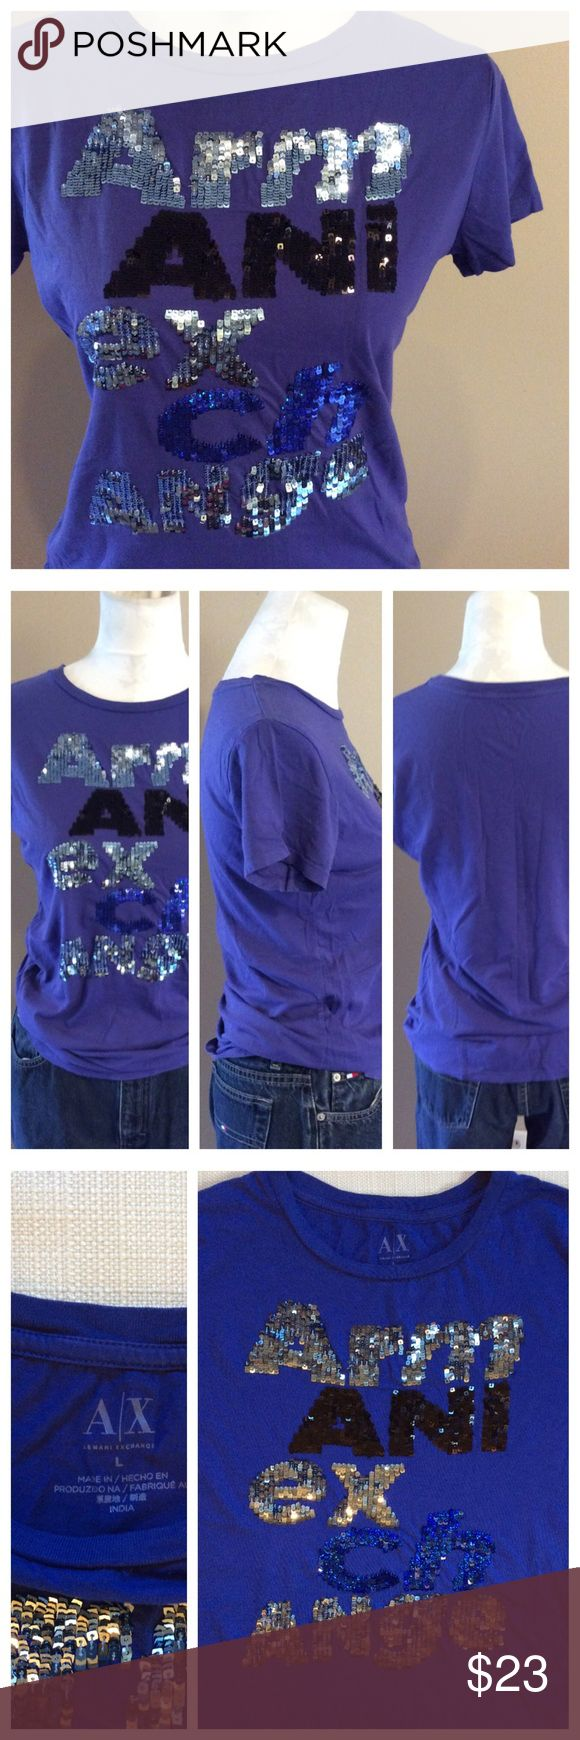 "PURPLE Armani Exchange Tee NOTE: this gorgeous tee is purple (difficult to photograph). Front sequin logo, crew neck and short sleeves. Super sparkly and super fabulous. Size L, 17"" chest and 25"" length. A/X Armani Exchange Tops Tees - Short Sleeve"